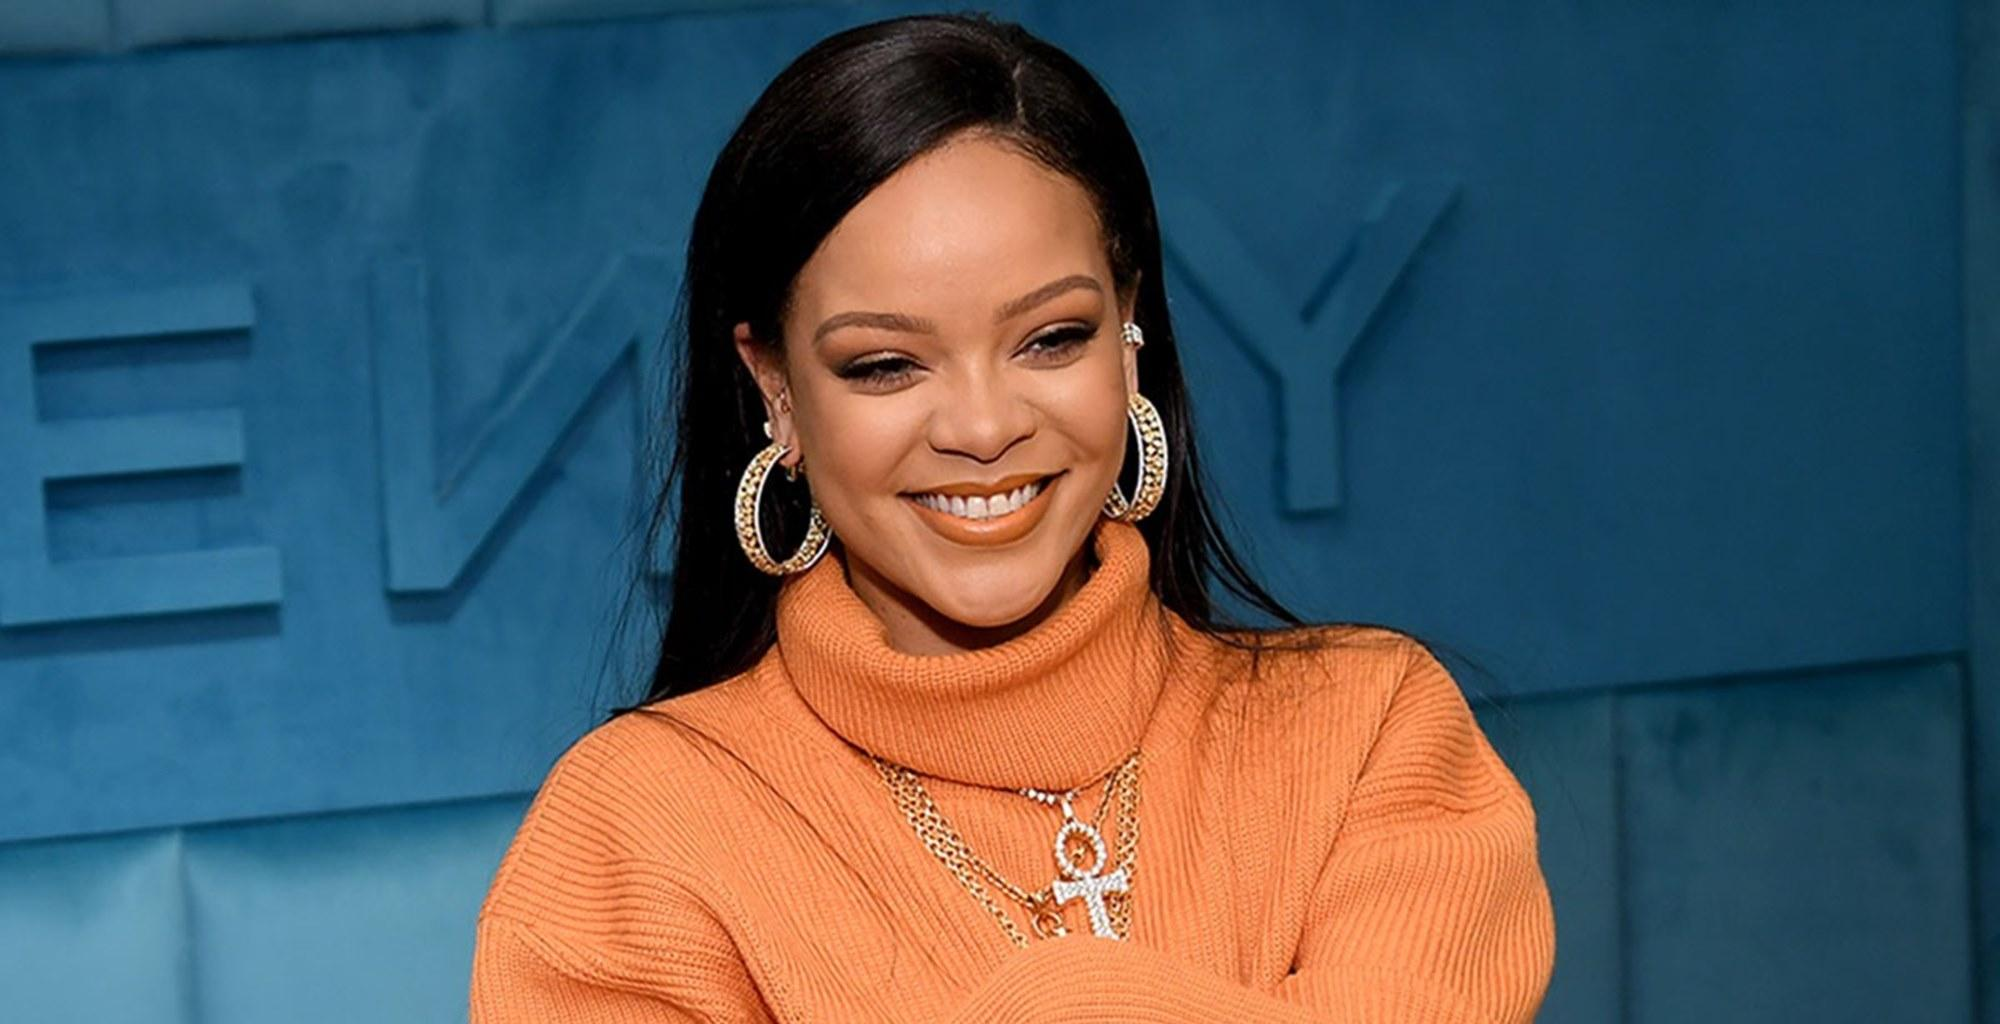 Rihanna Twerks In Mini Skirt While Blowing The Candles Of Her Massive Birthday Cake In Fun-Filled Video -- Fashion Mogul Is Not Missing Her Exes